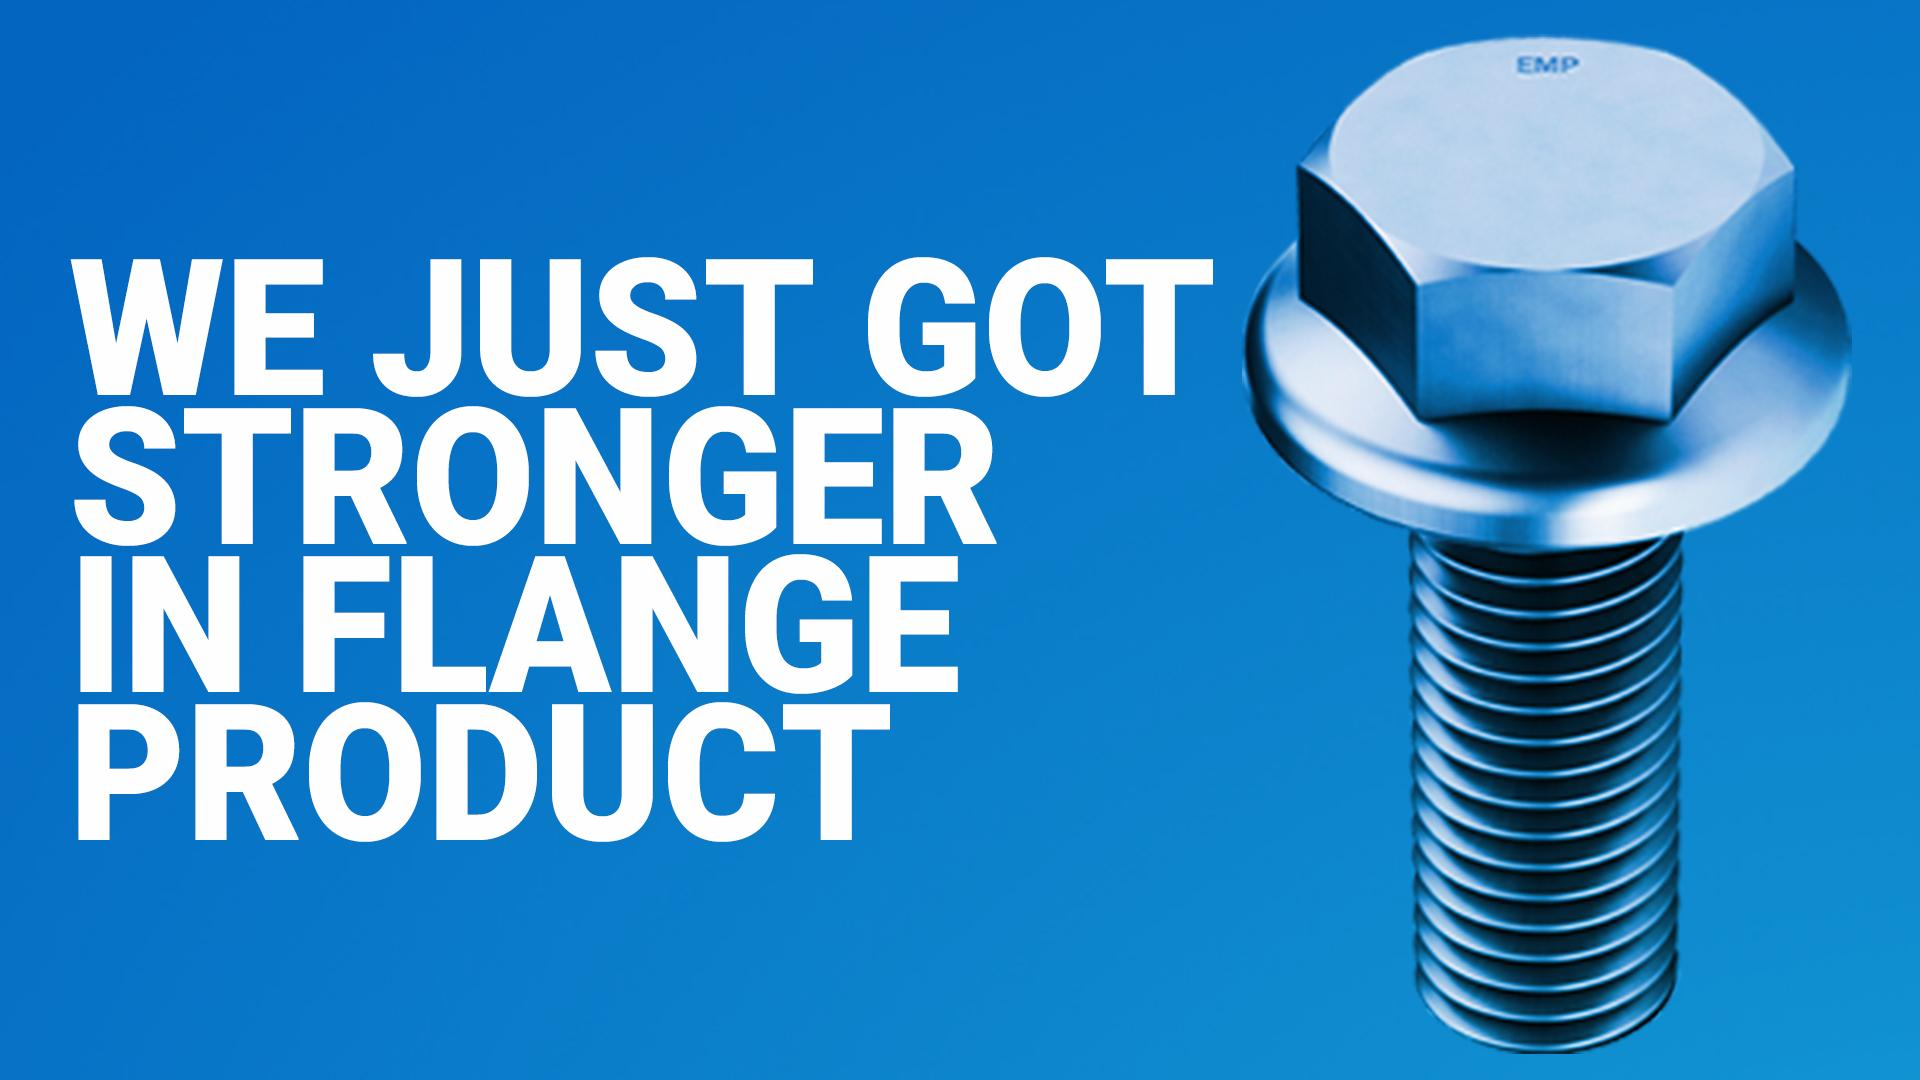 We Just Got Stronger In Flange Product